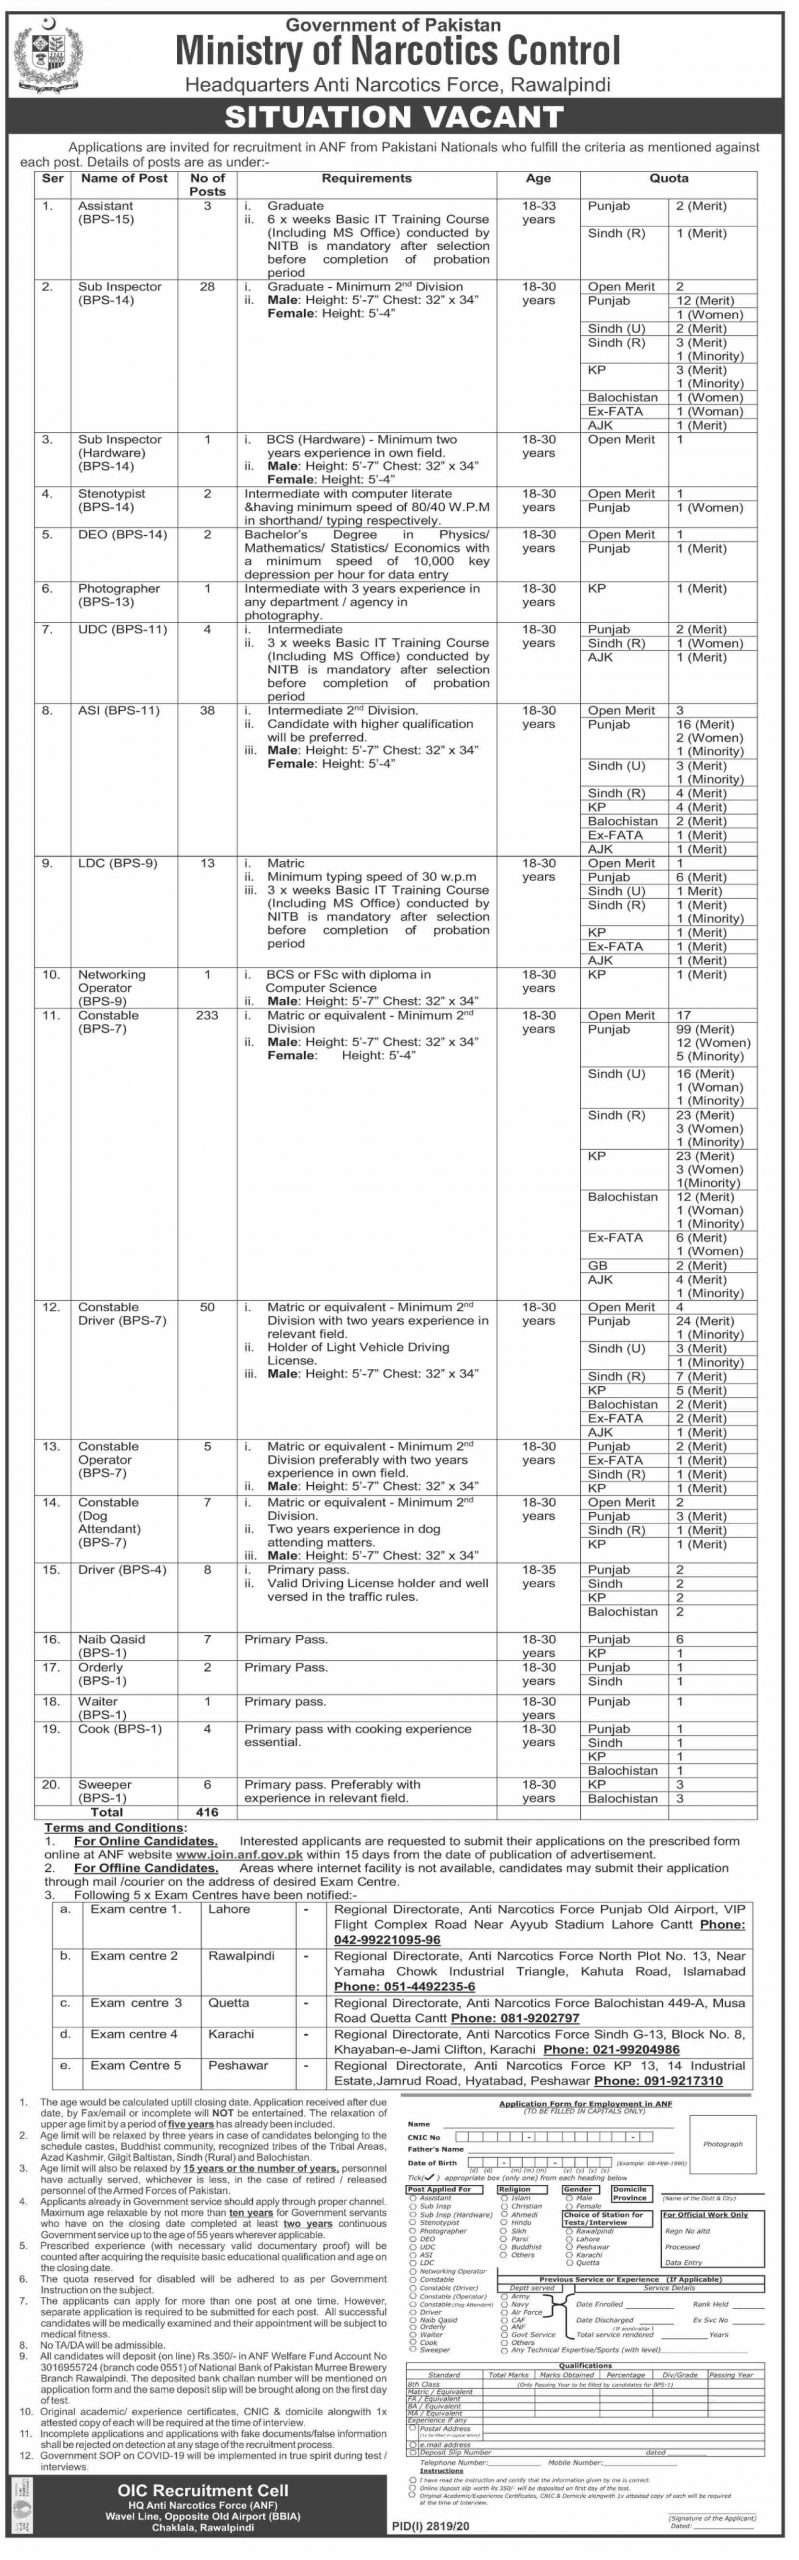 Government of Pakistan Ministry of Narcotics Control Rawalpindi Jobs November 2020